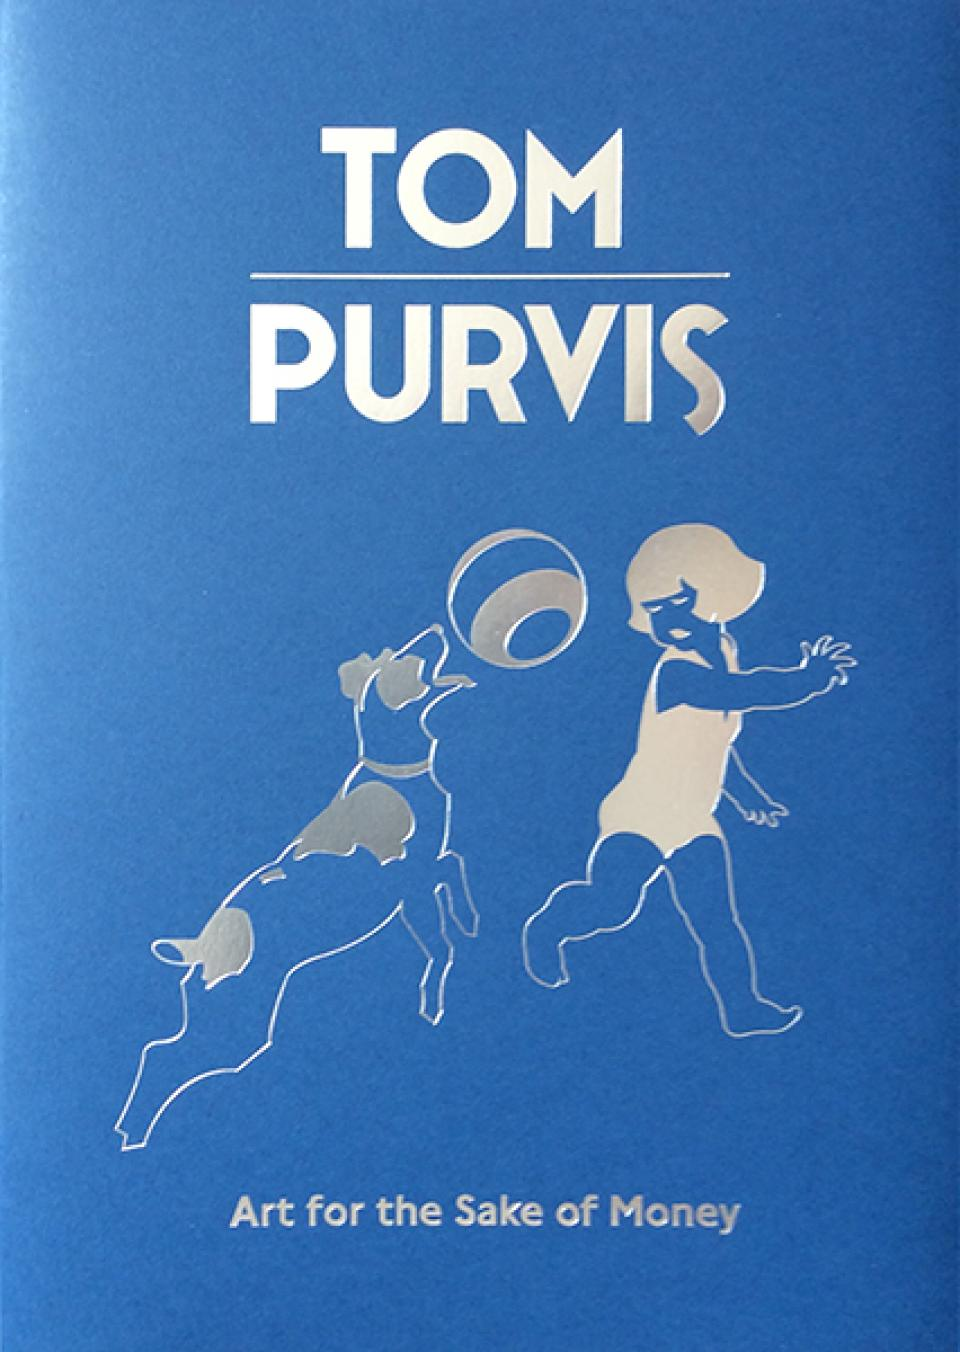 Tom Purvis by Ruth Artmonsky